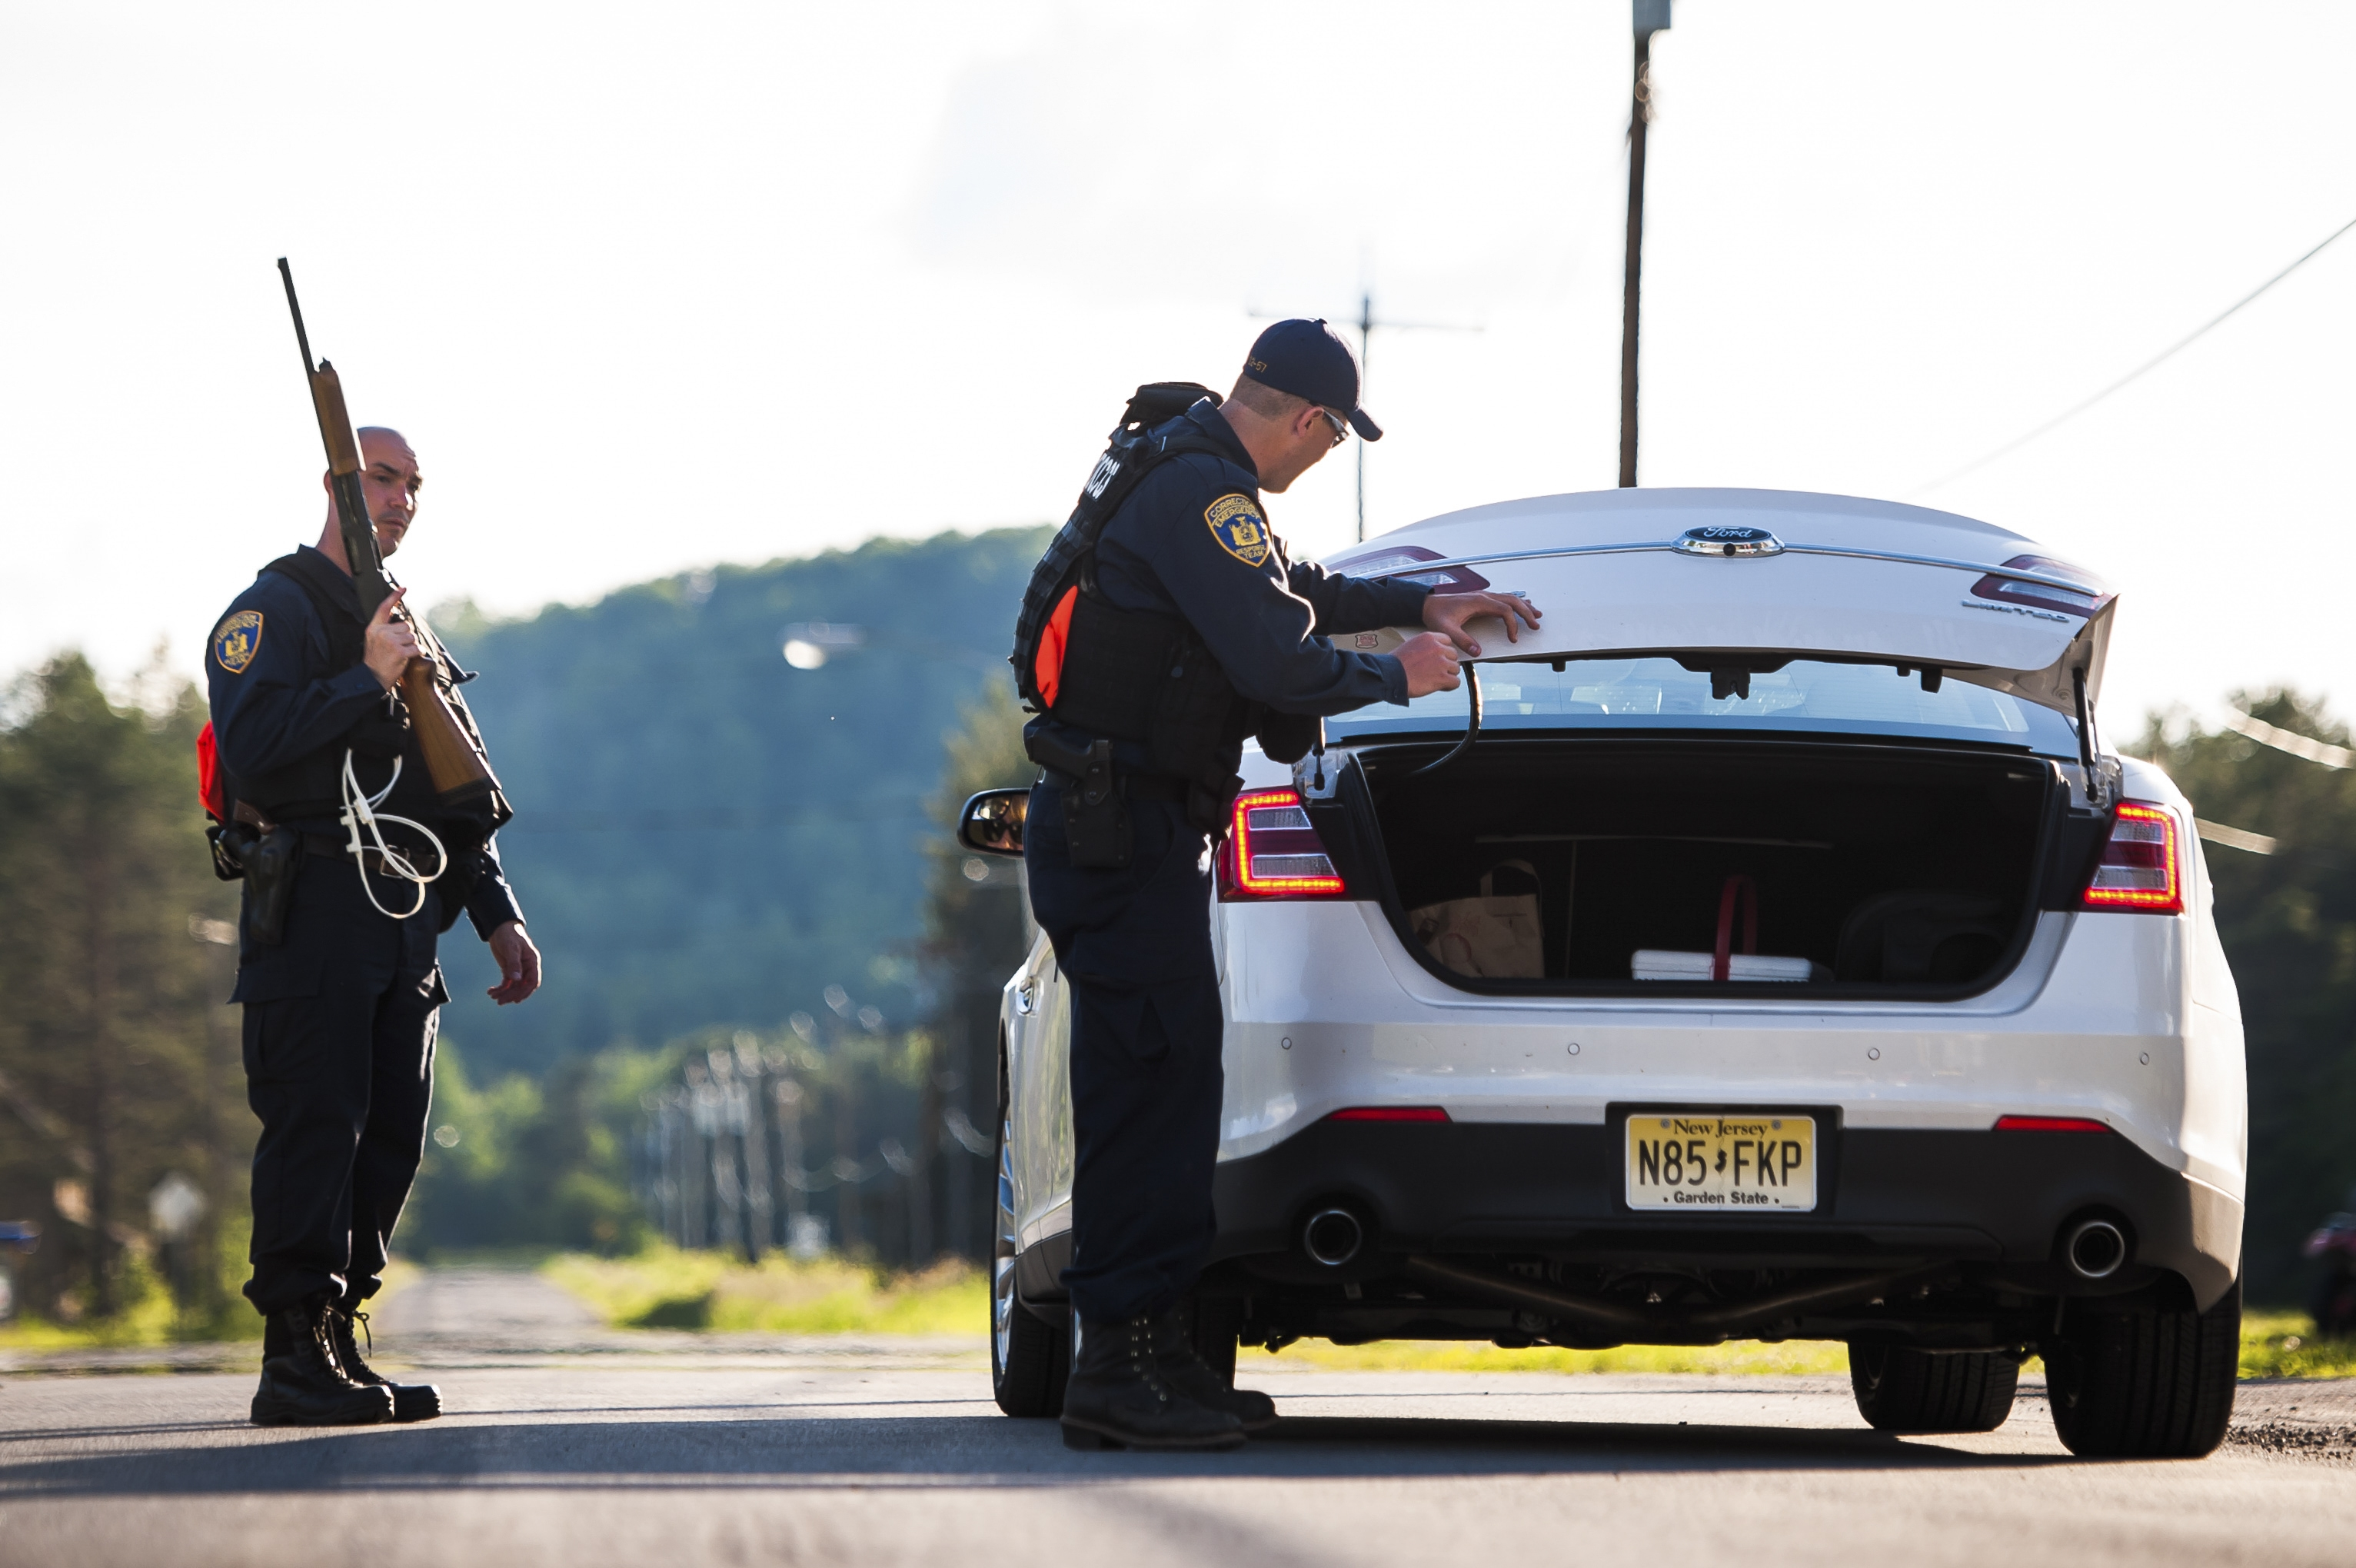 Corrections officers check the trunk of a car near Owls Head, N.Y., June 22, 2015. Forensic evidence indicated that the two killers had been in nearby Mountain View, N.Y., 15 miles west of the Clinton Correctional Facility, within the last 48 hours. (Jacob Hannah/The New York Times)